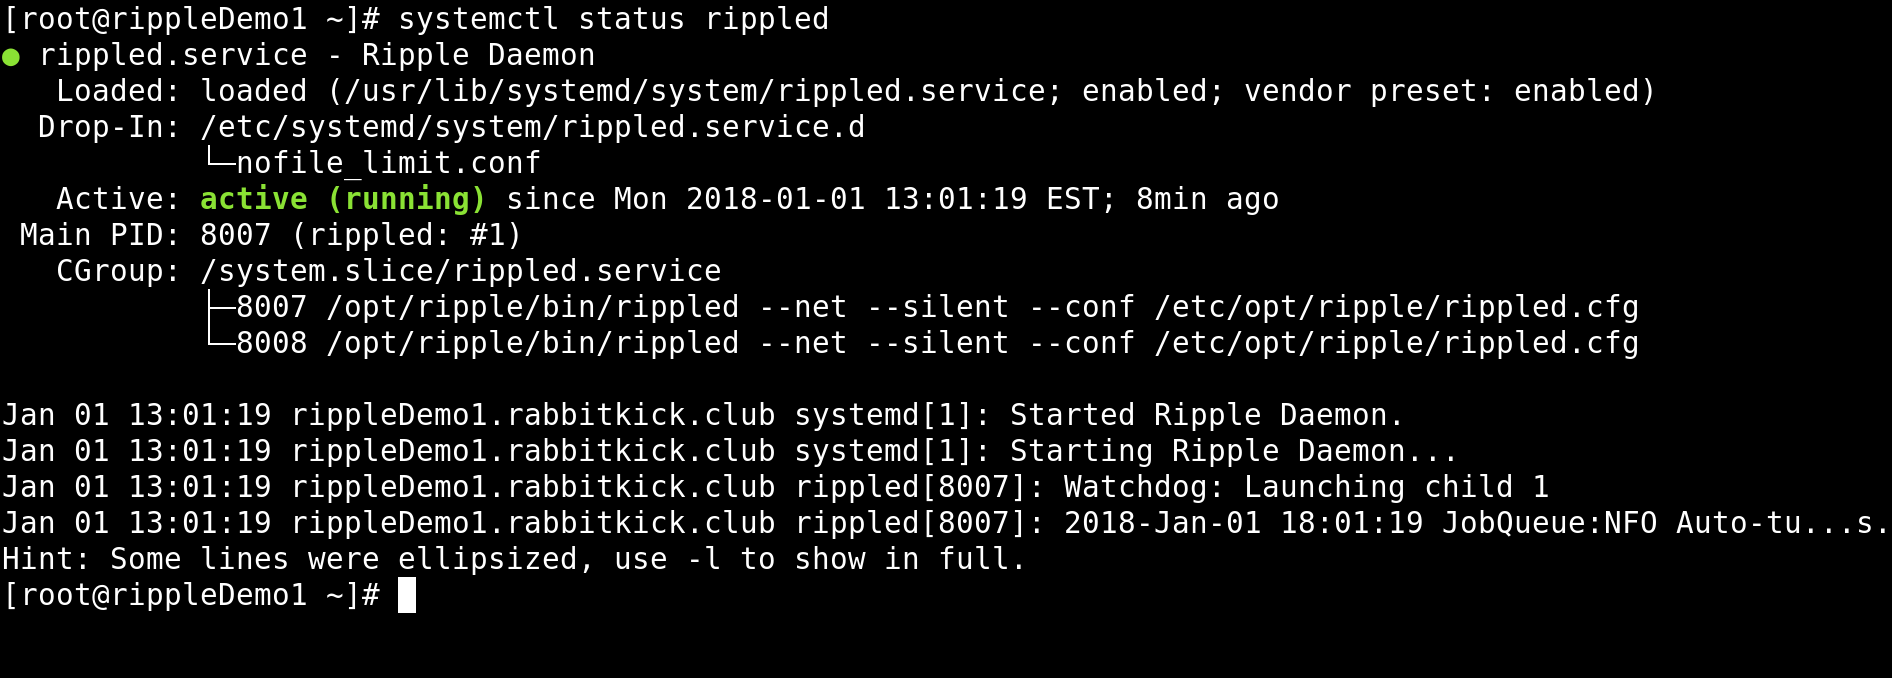 Screenshot of systemctl status rippled command.